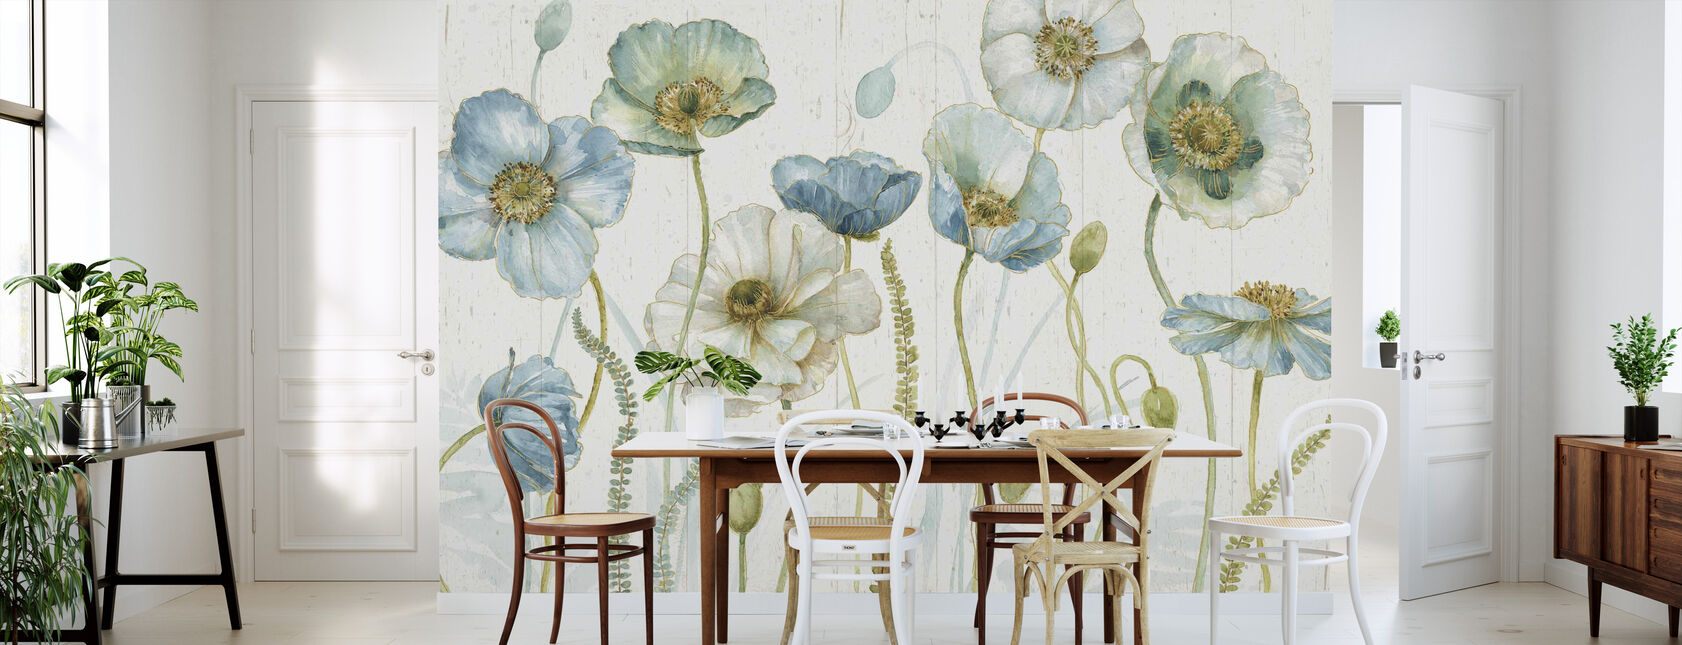 My Greenhouse Flowers on Wood - Wallpaper - Kitchen